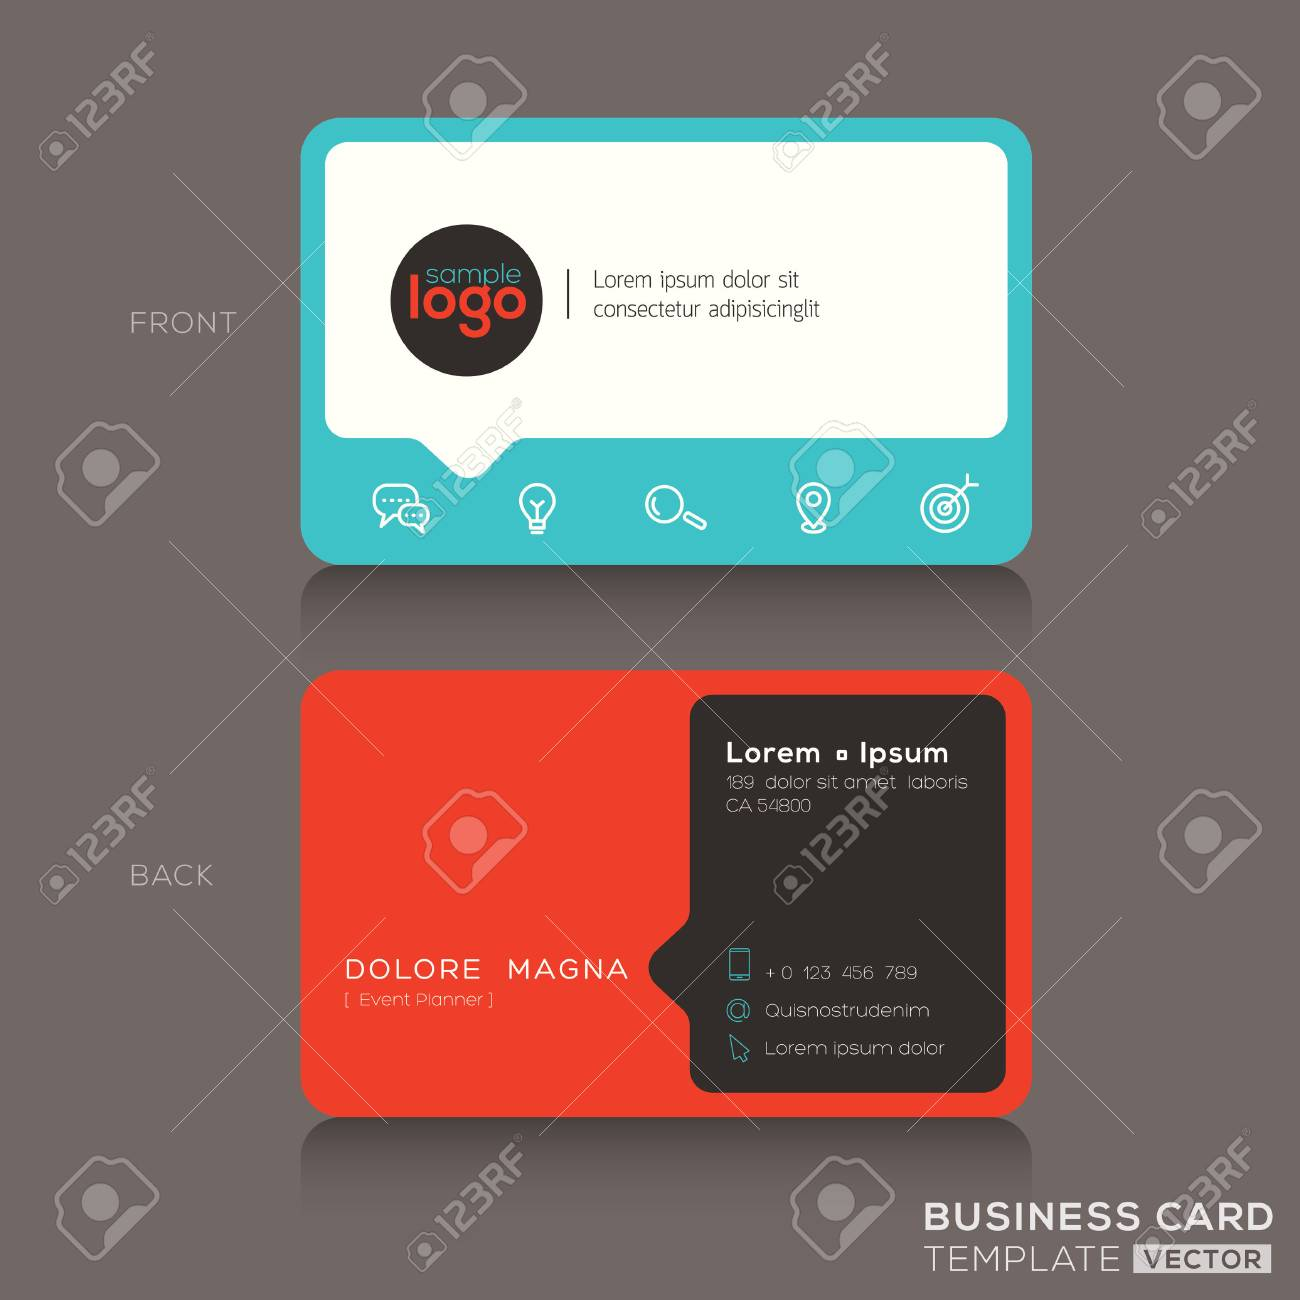 Modern Trendy Business Card Design Template Royalty Free Cliparts ...